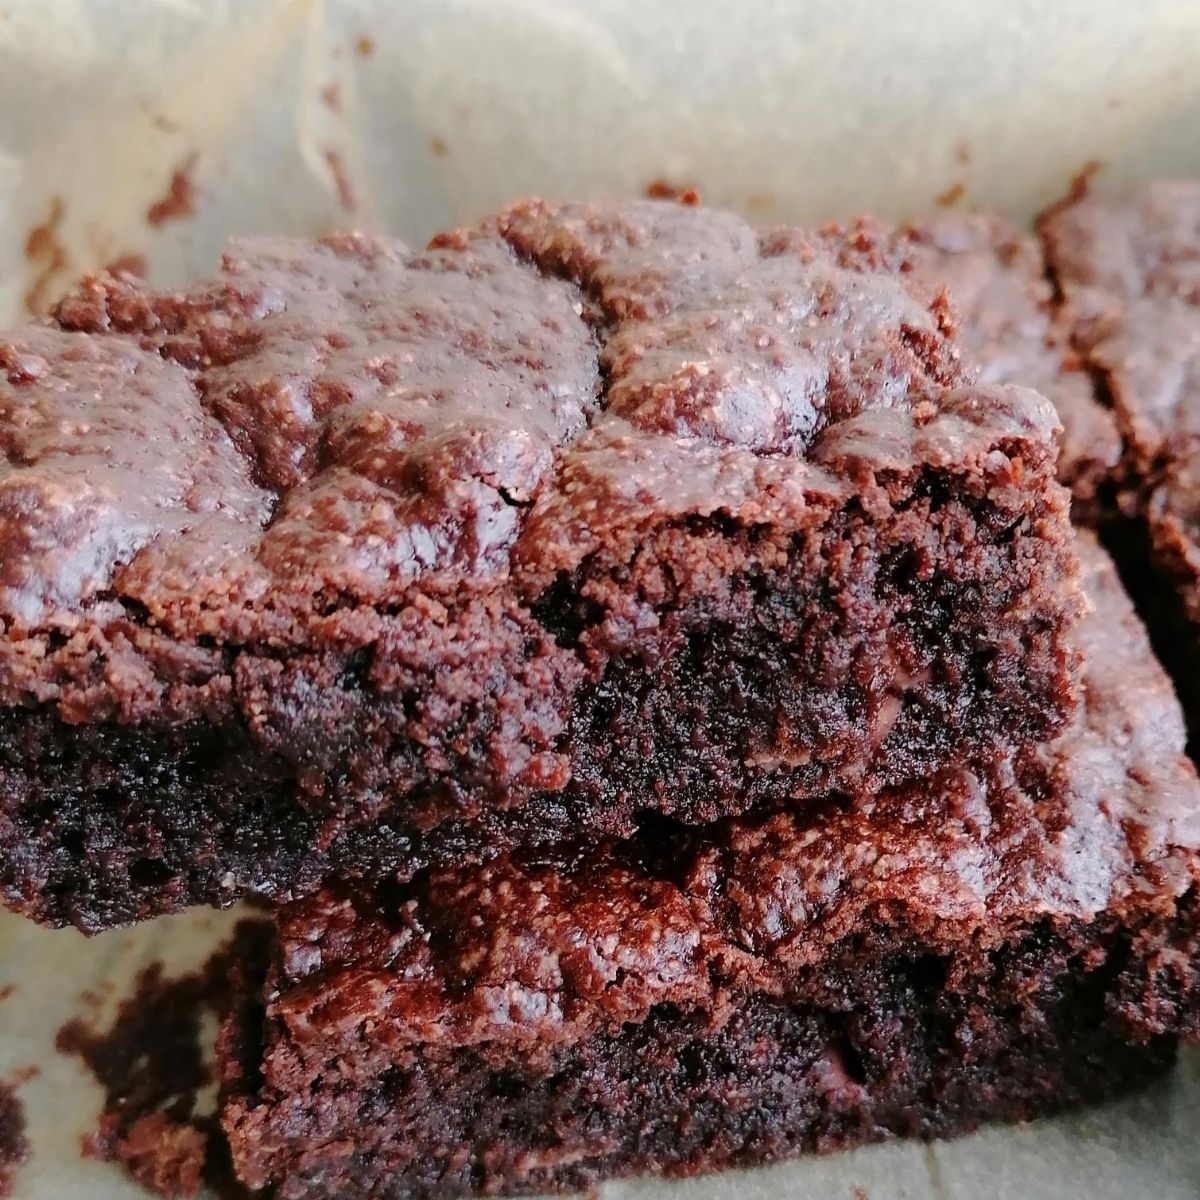 Dairy-free chocolate brownies